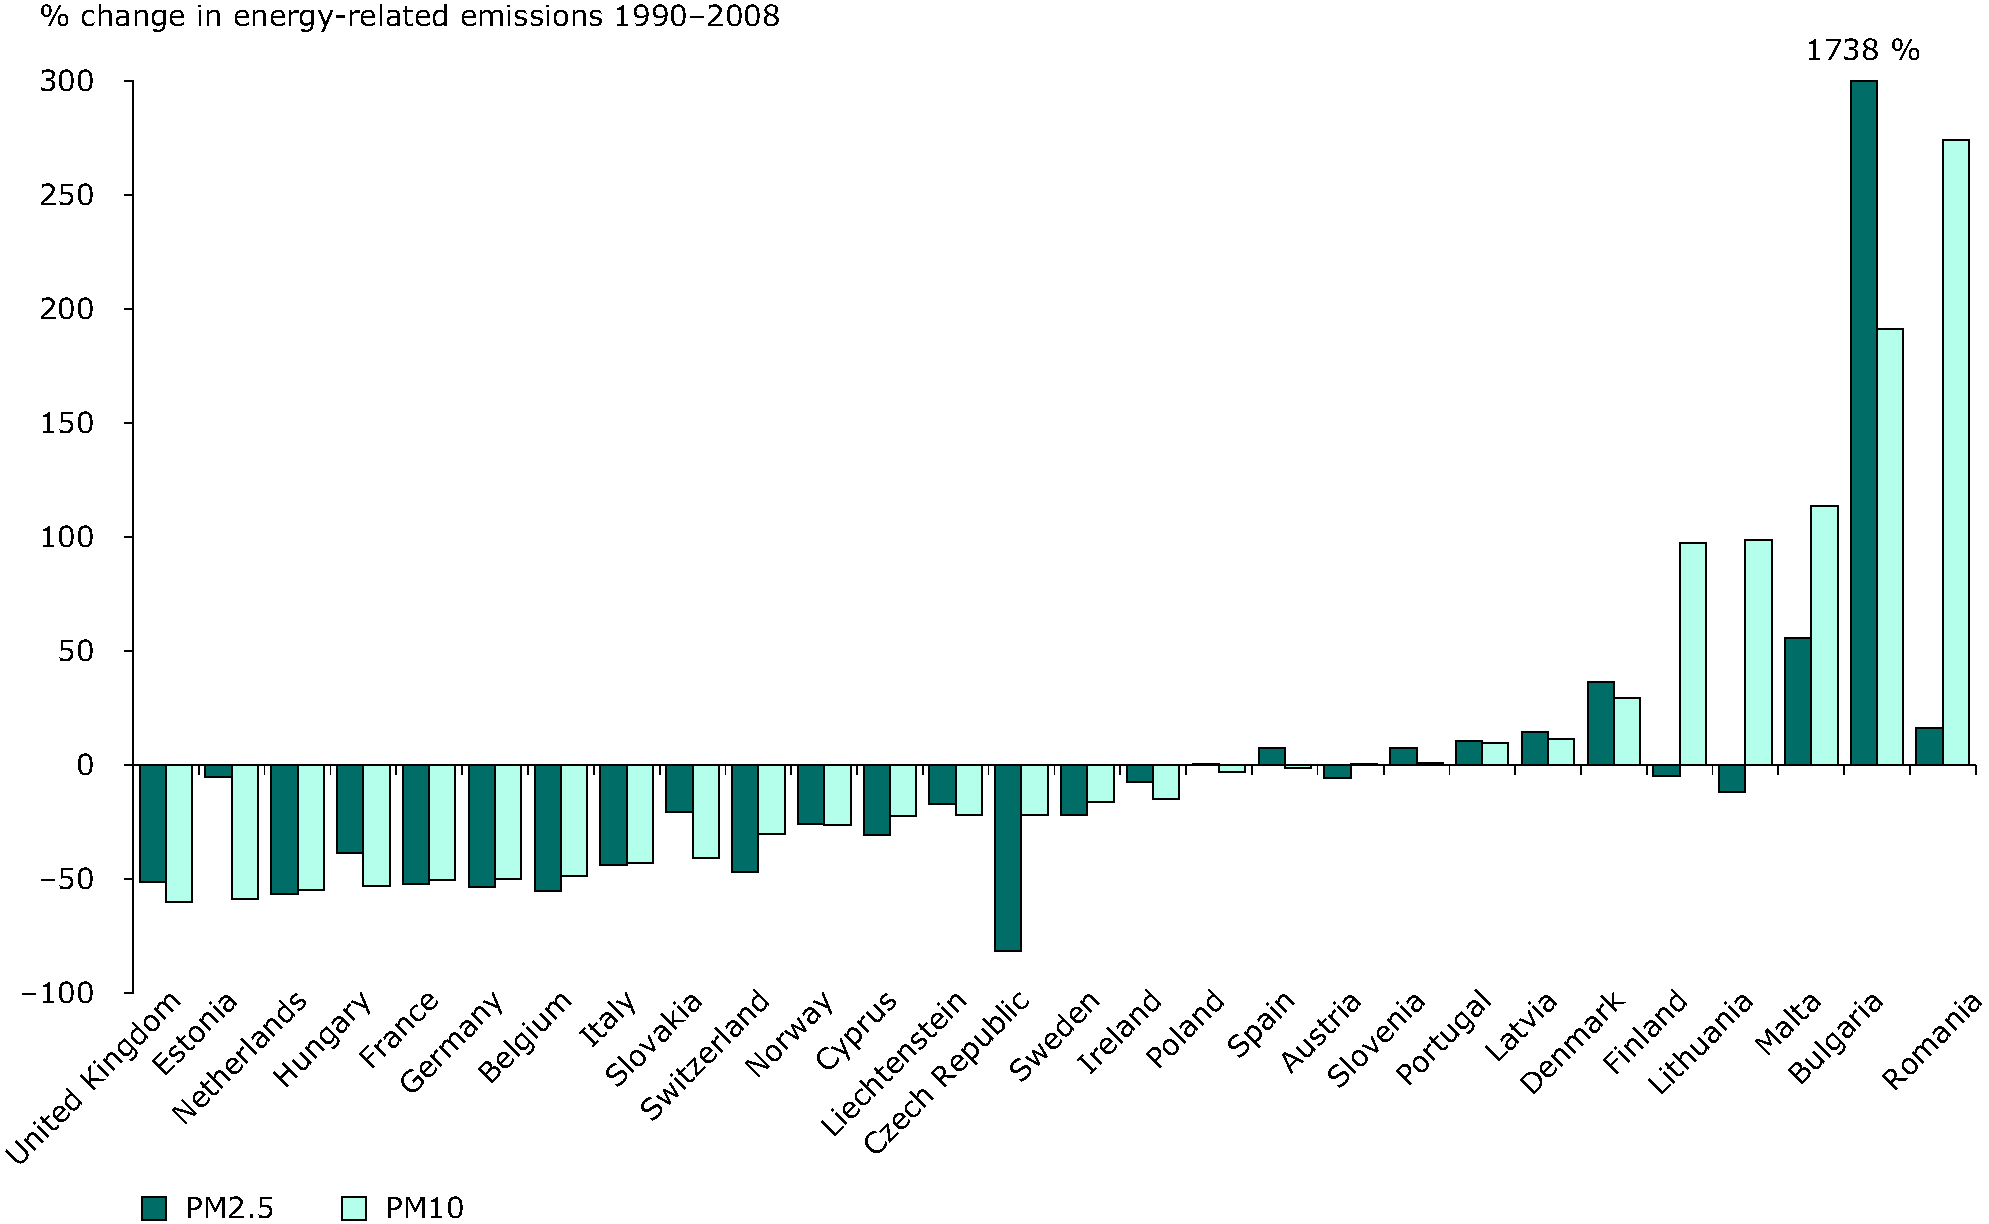 Overall change in energy-related (i.e. combustion) emissions of PM10 and PM2.5, 1990-2008